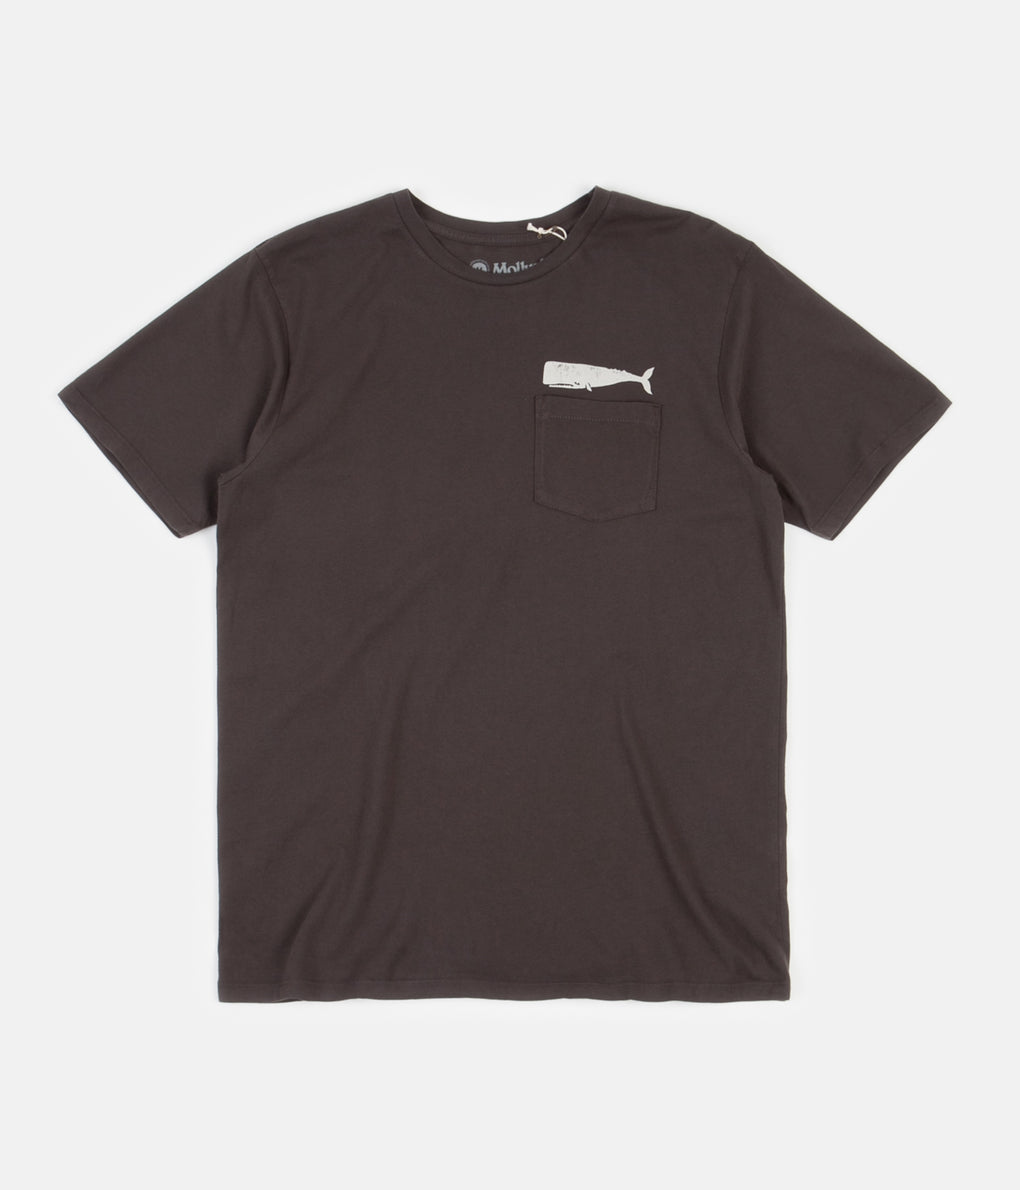 Mollusk Olde Whale T-Shirt - Faded Black